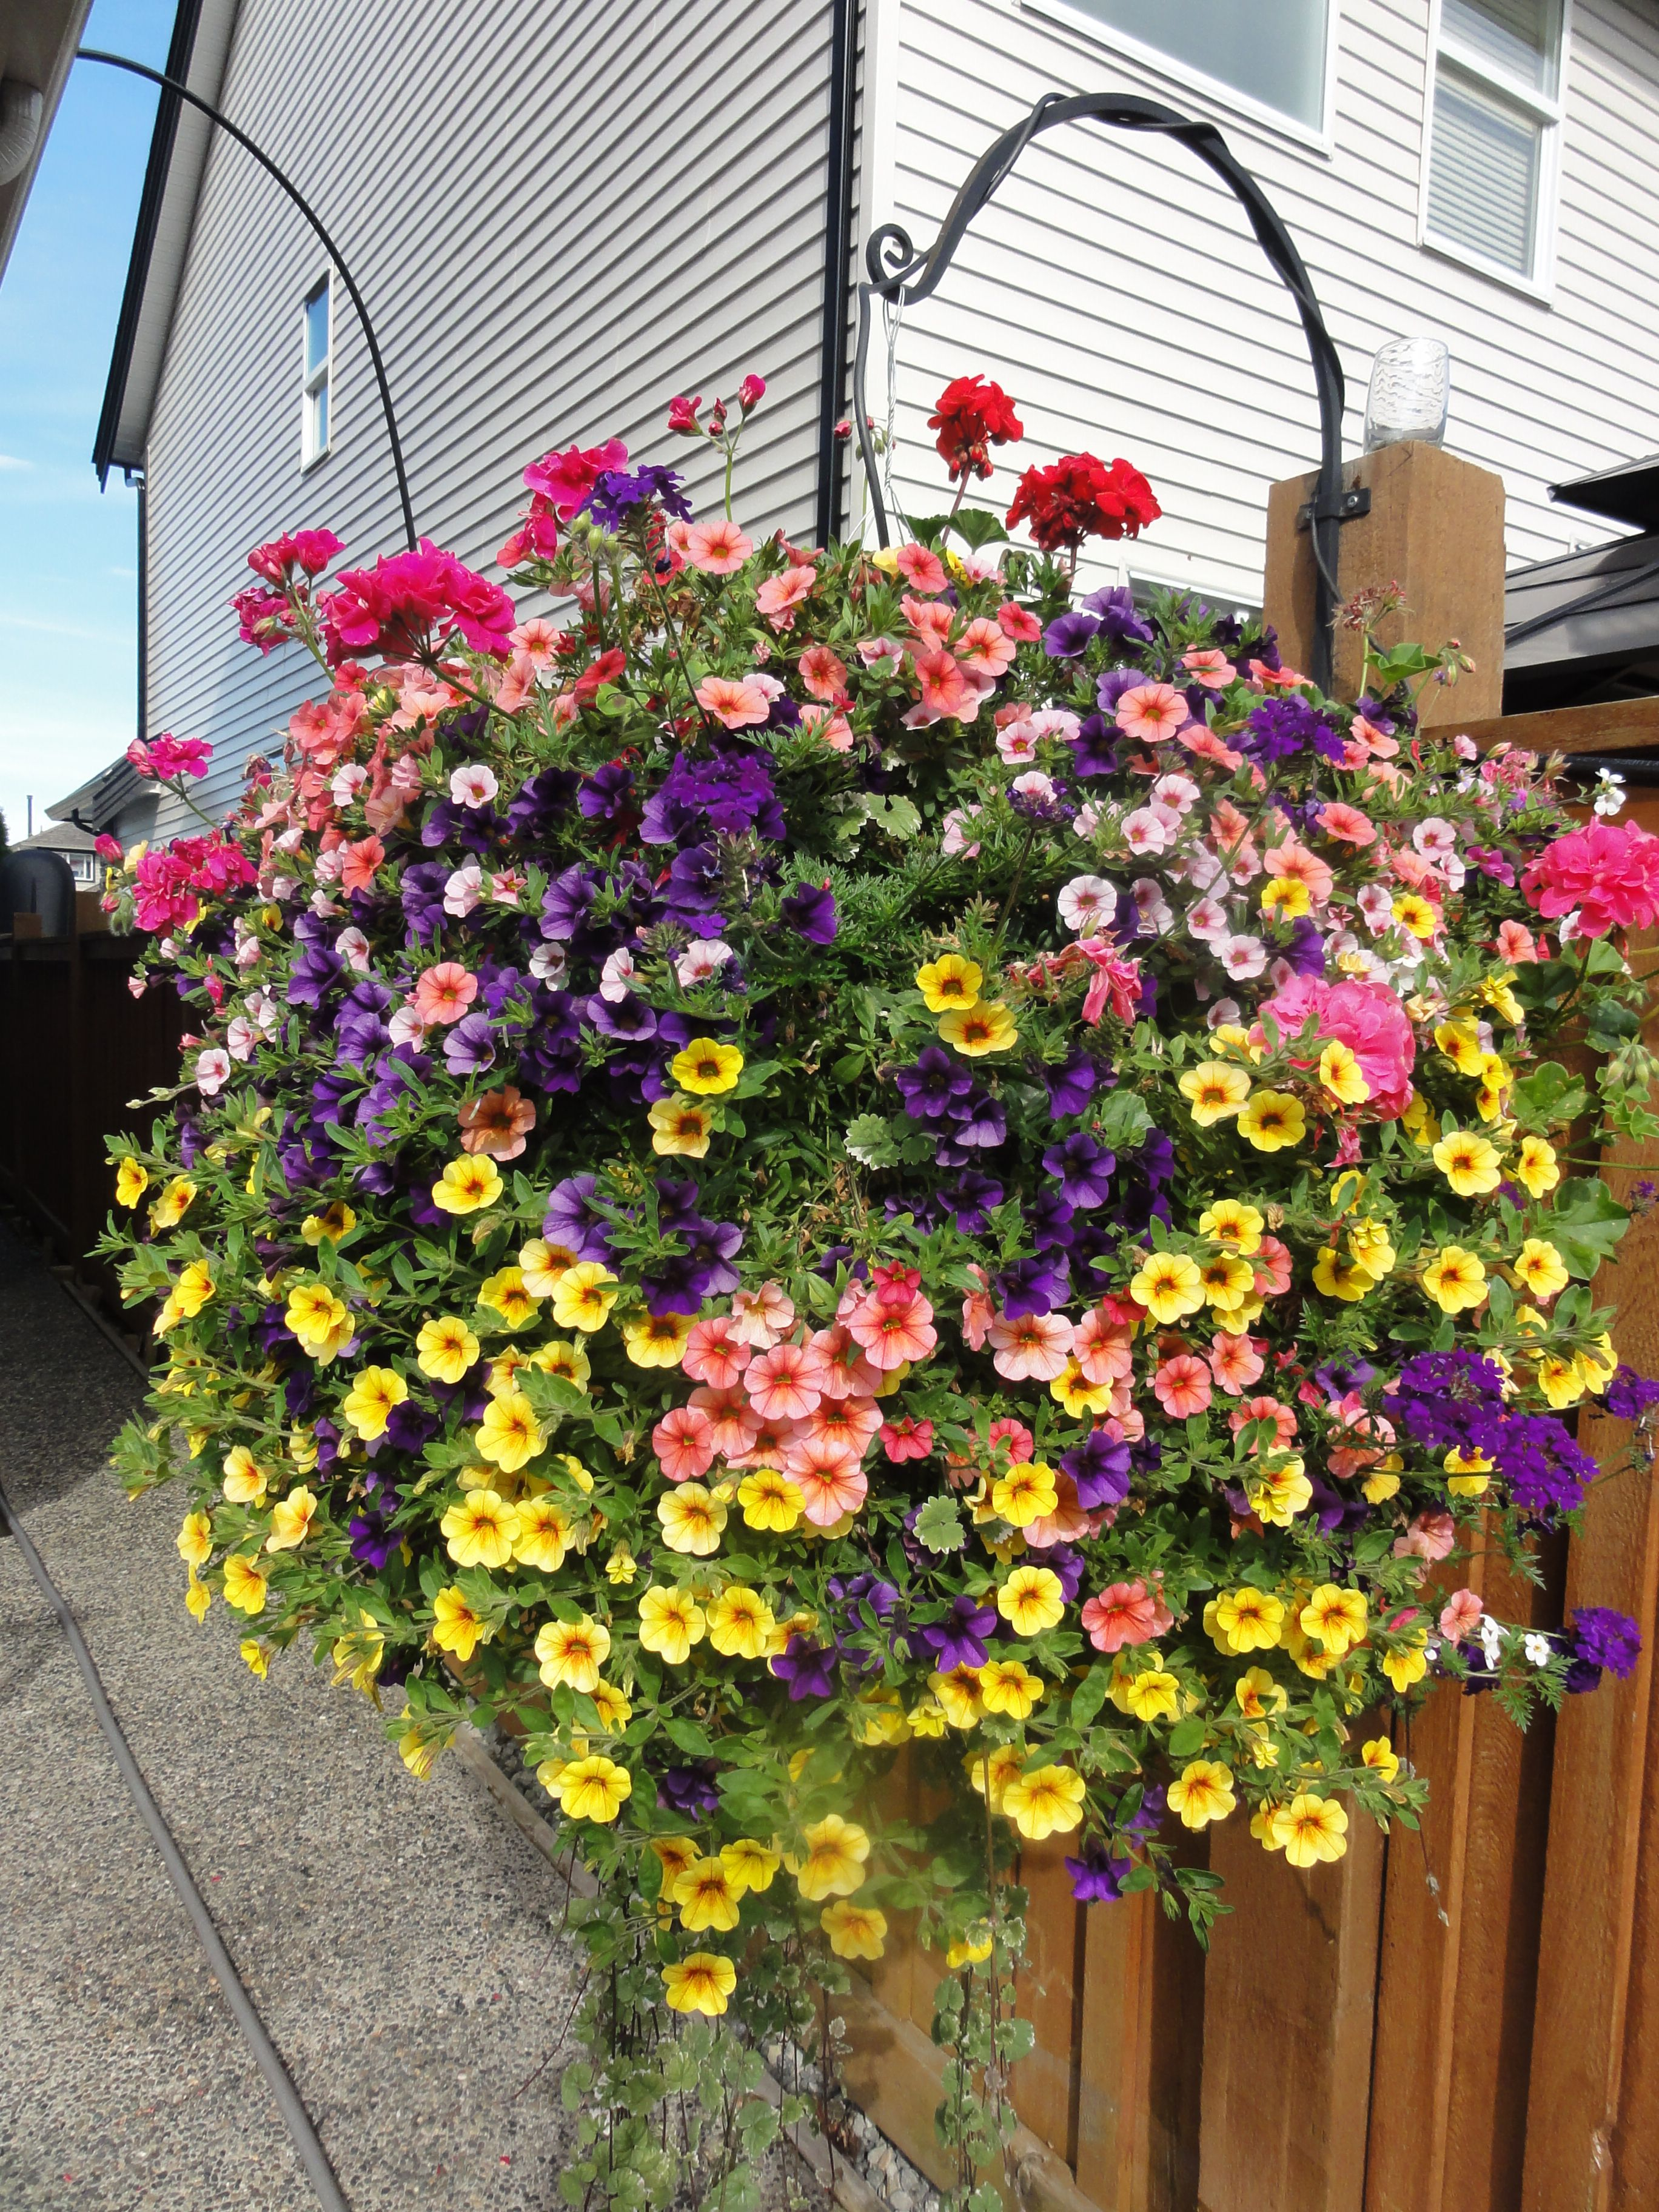 Pin By West Coast Gardens On Outdoor Hanging Basket Ideas For The Porch Beautiful Home Gardens Hanging Baskets Hanging Garden